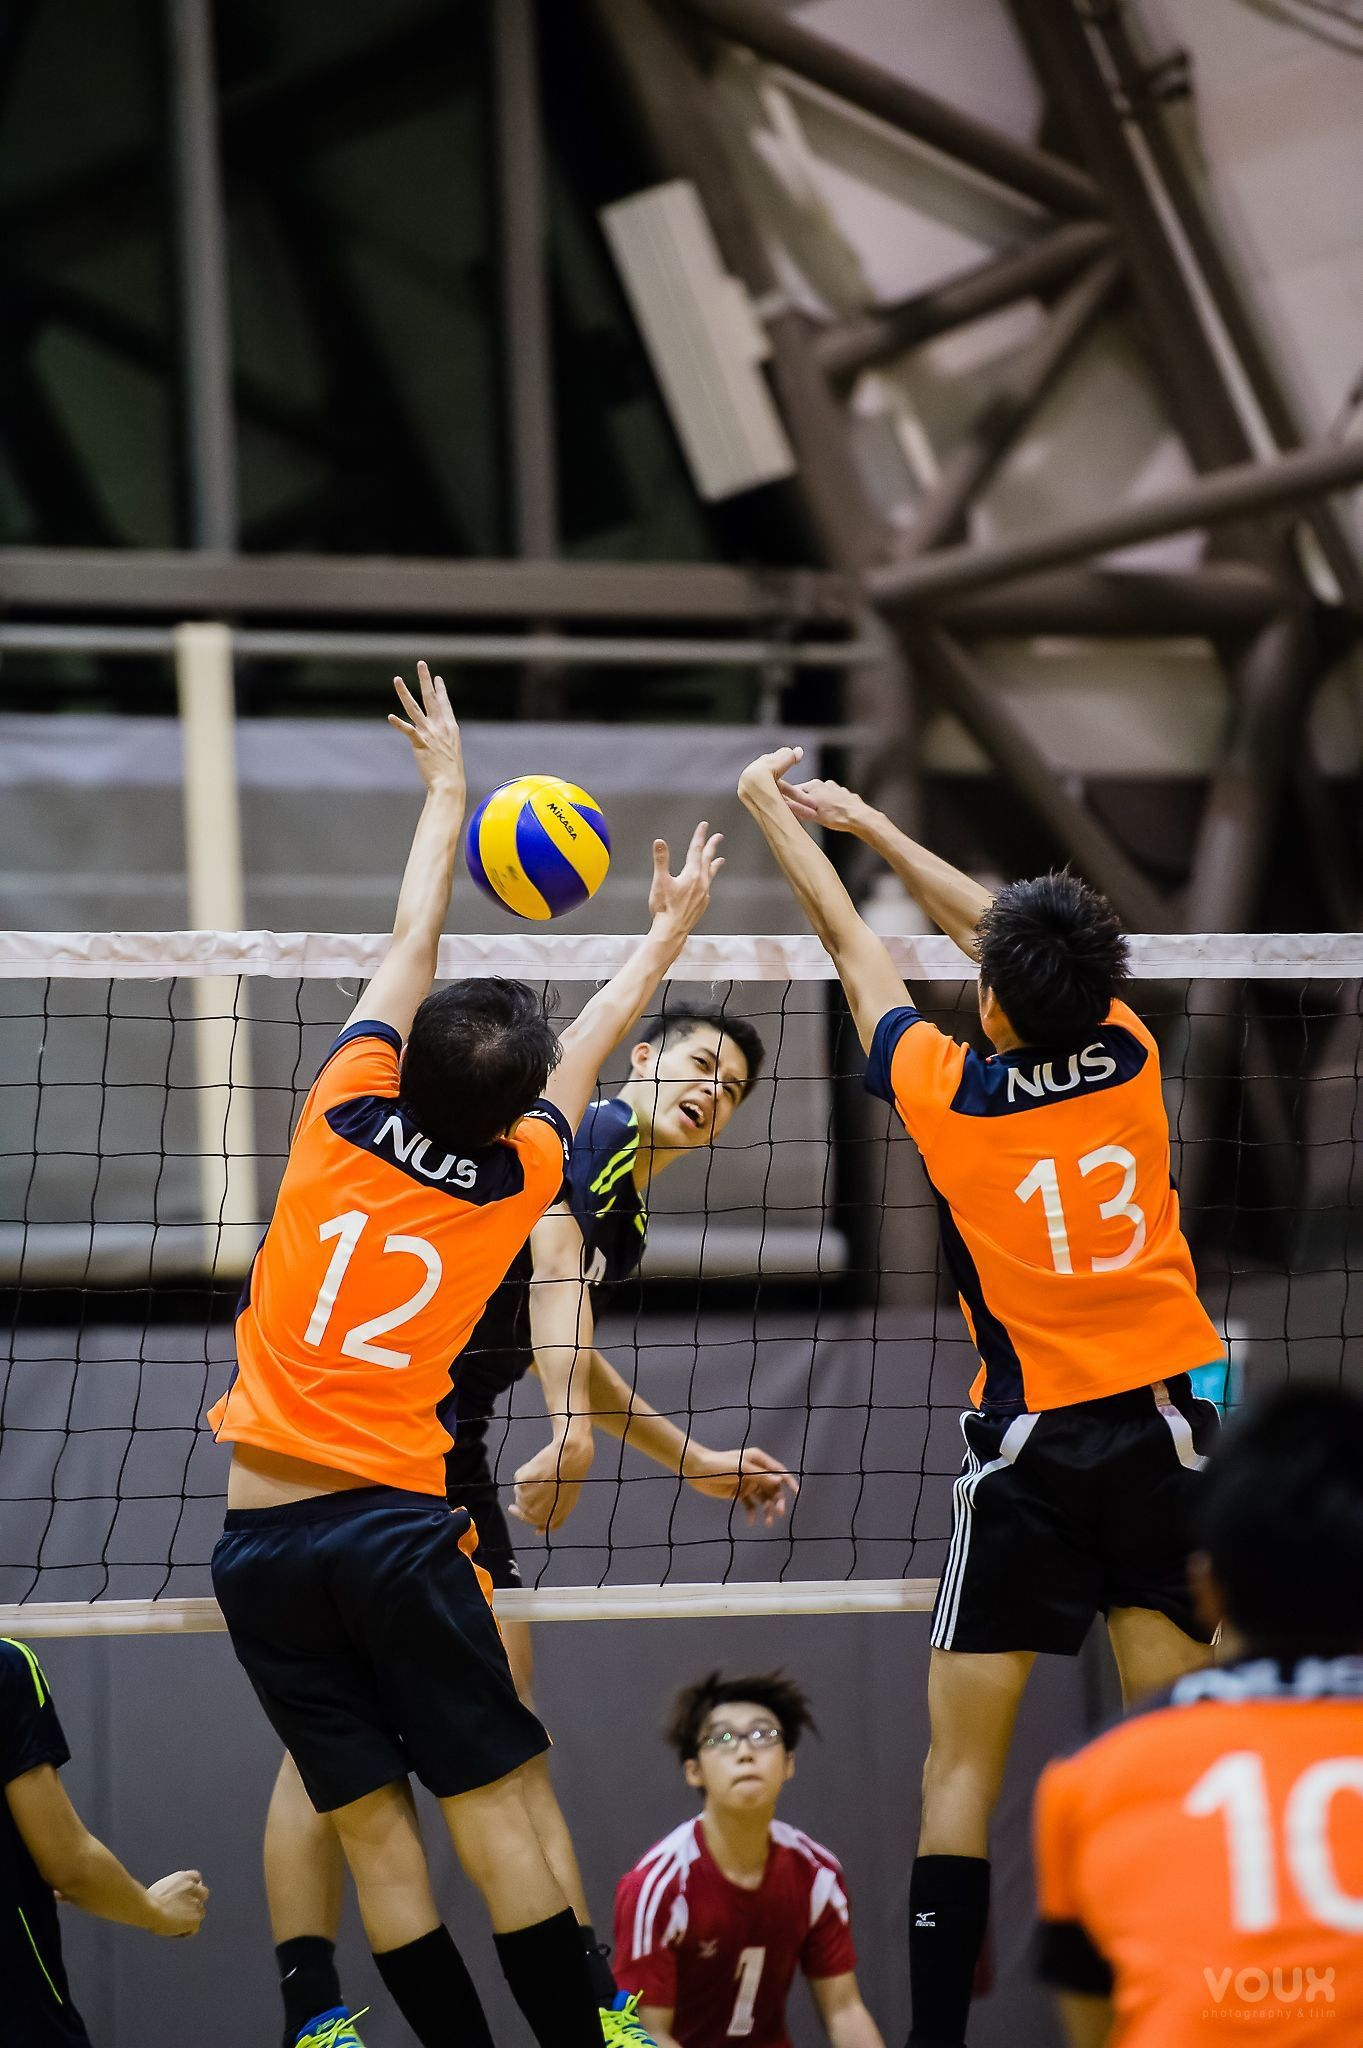 Institute Varsity Polytechnic Ivp Games 2015 Teamnus Men S Volleyball Singapore Sports Photography Sports Photograph Mens Volleyball Sports Photography